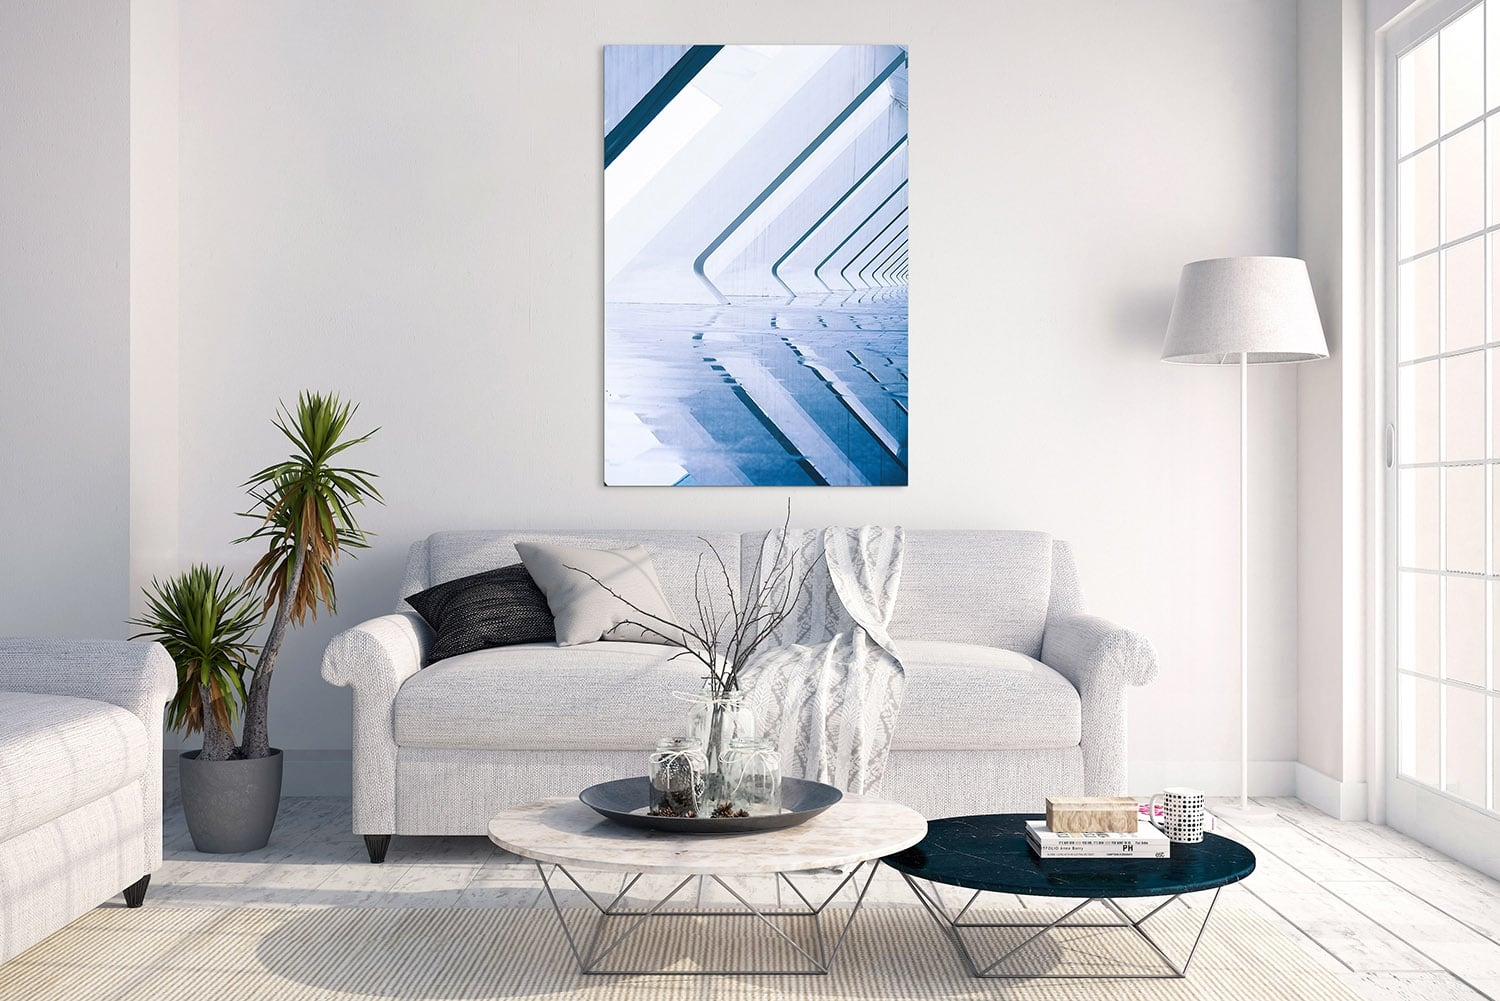 Photo d'art aluminium piscine contemporaine pour décoration murale